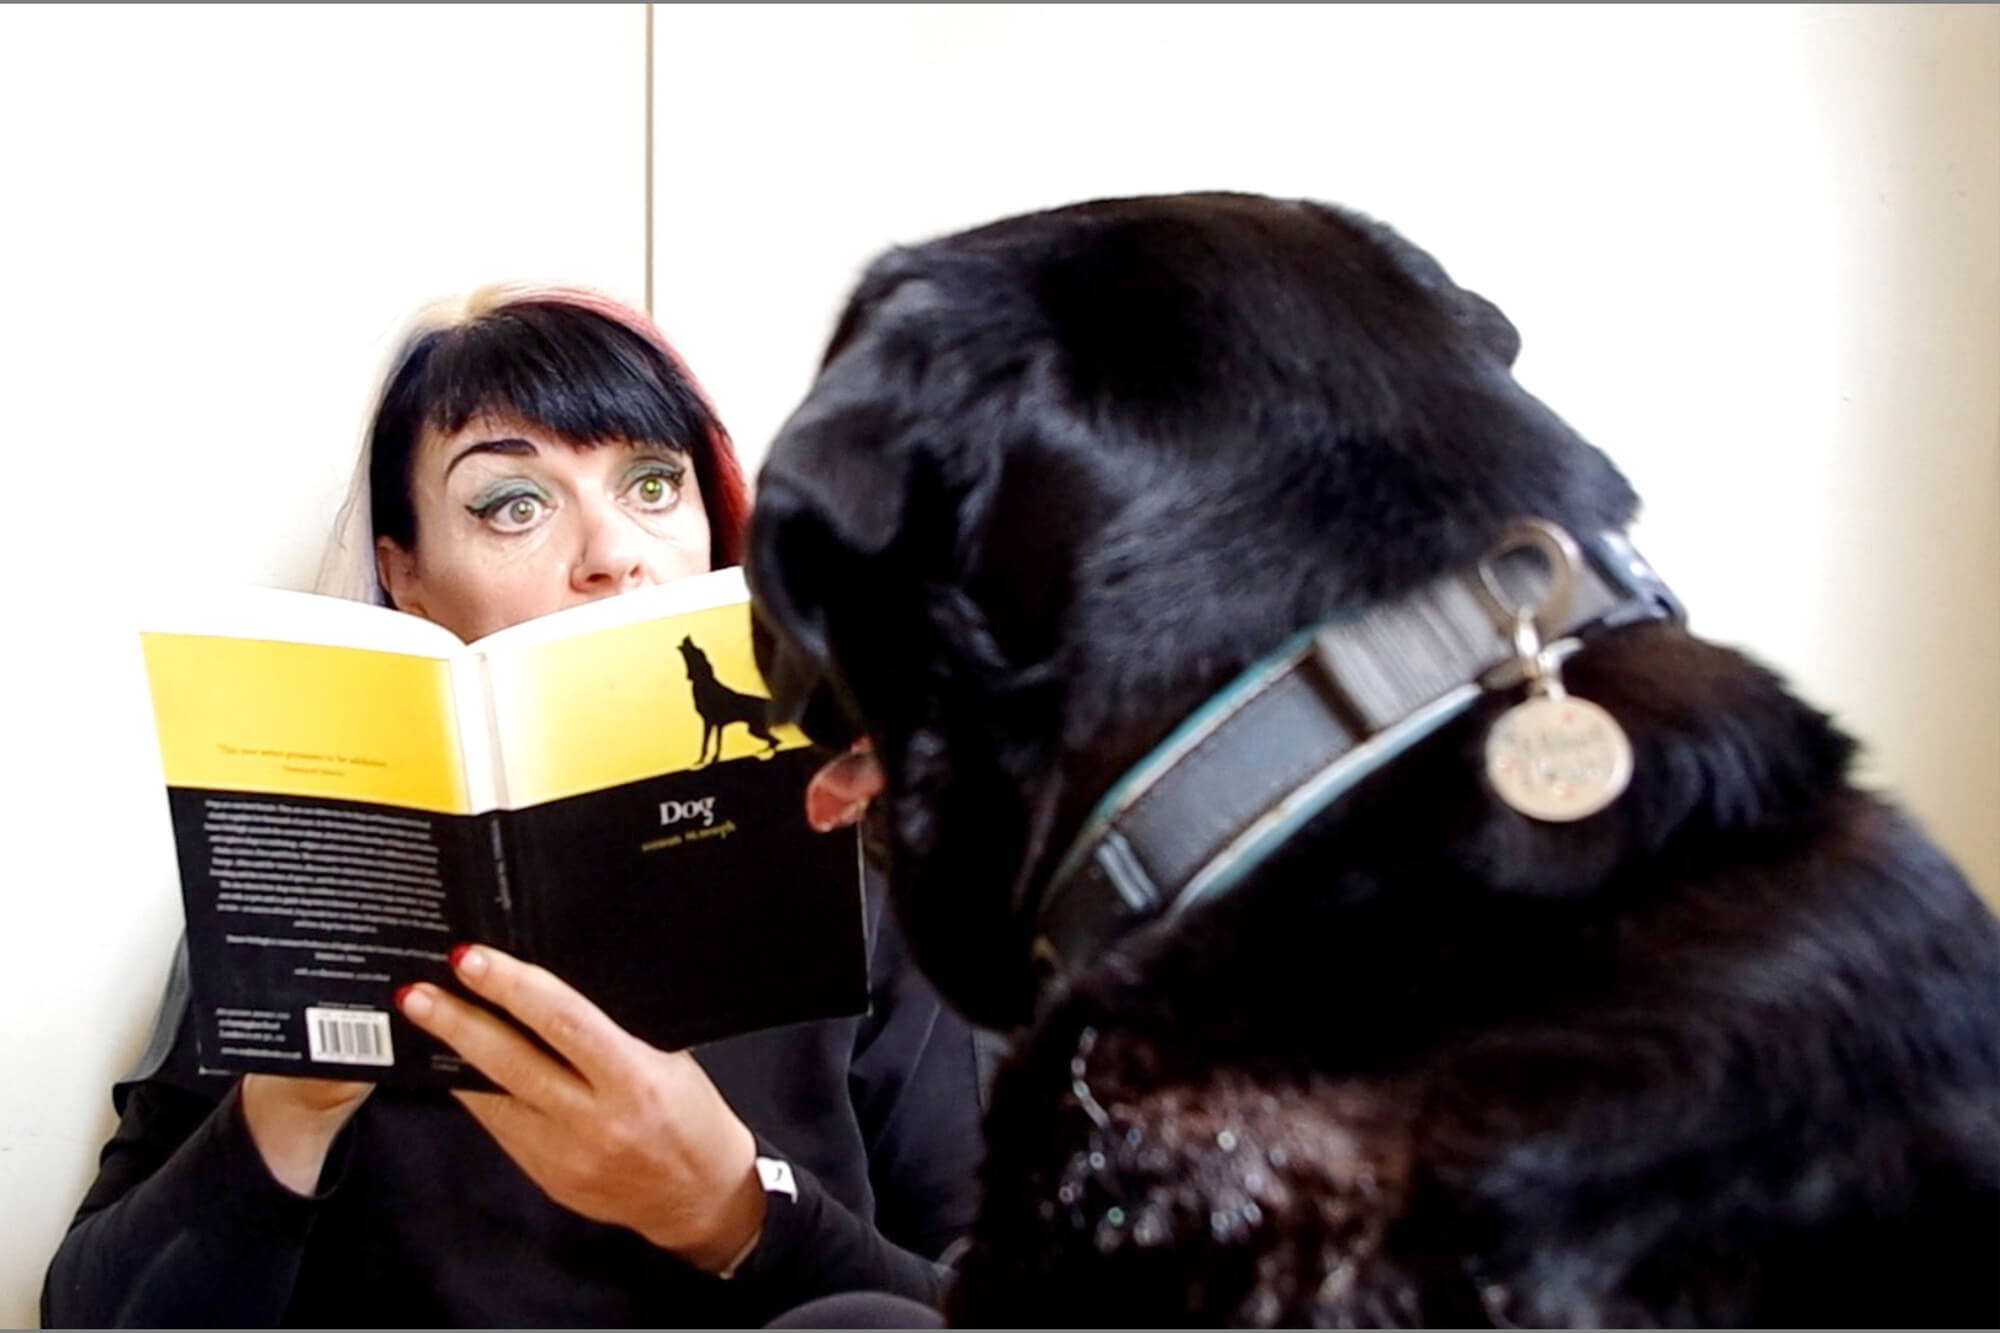 Ang Bartram holds a book up called 'Dog' in front of a dog who faces her.